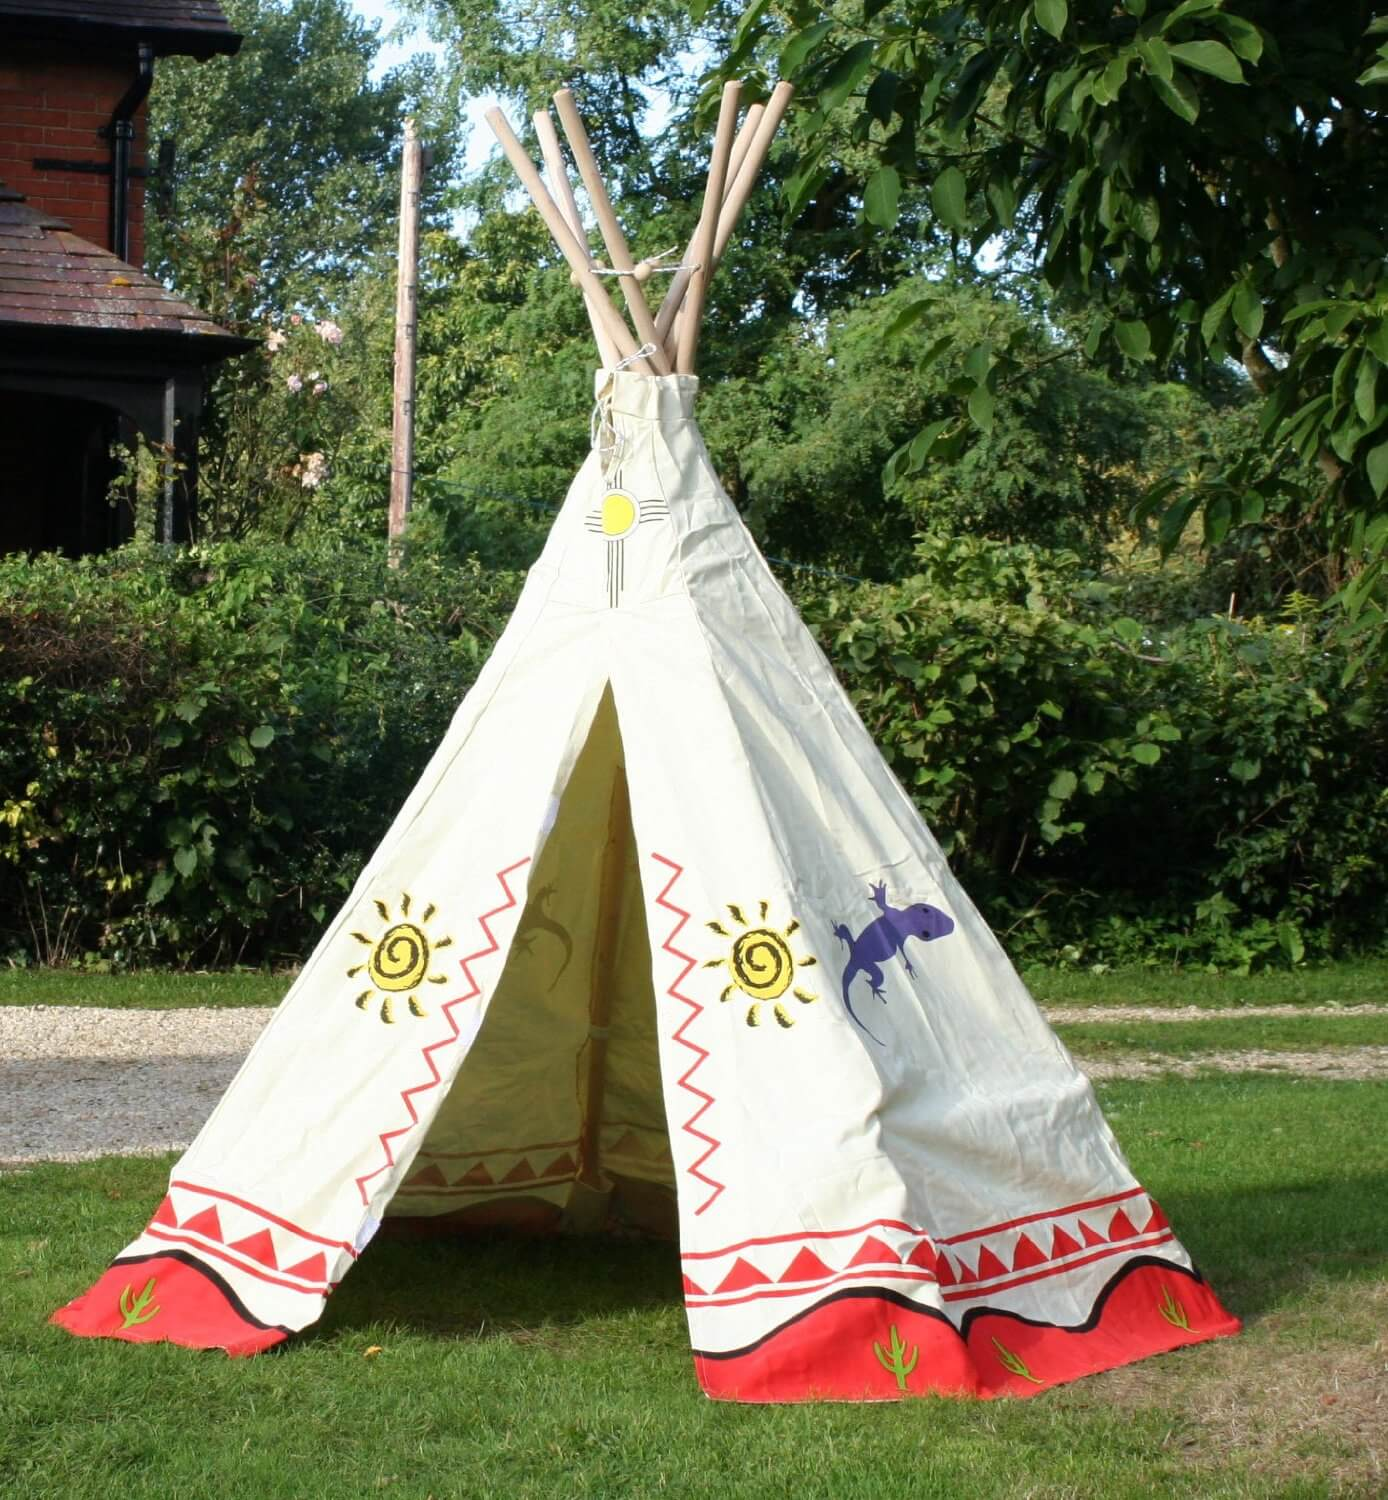 garden games indianerzelt kinderzimmer tipi zelt. Black Bedroom Furniture Sets. Home Design Ideas